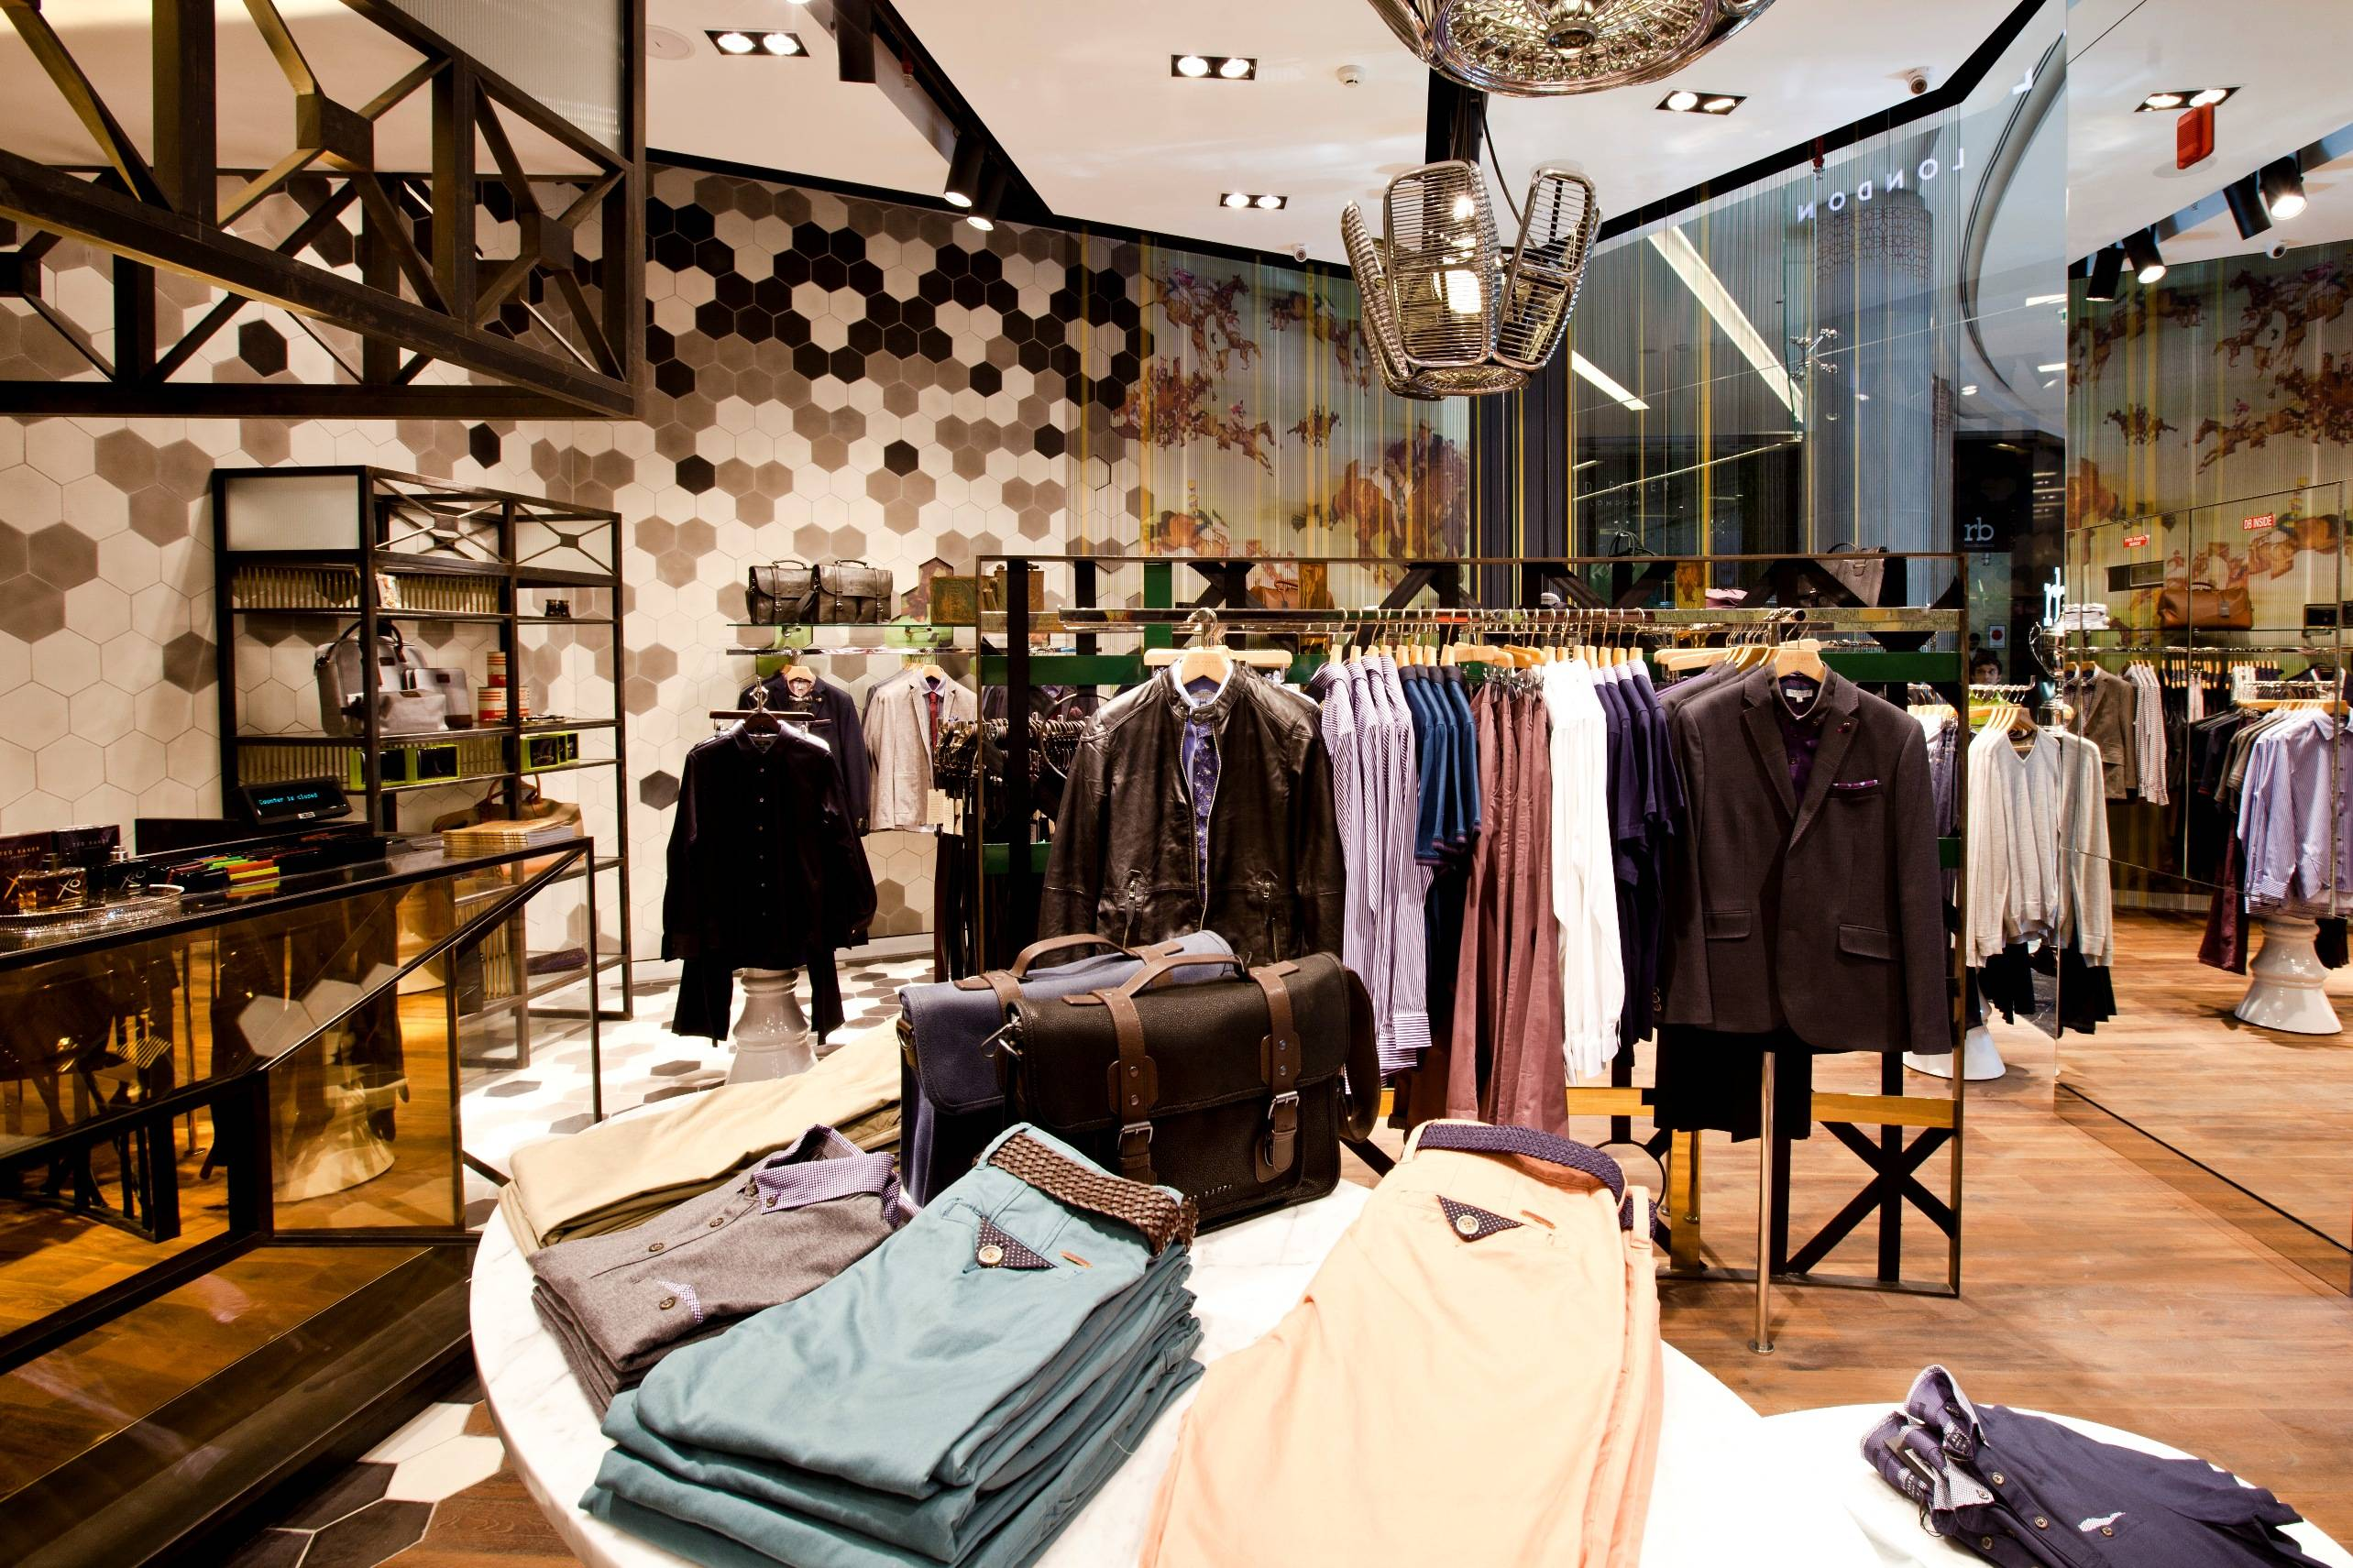 5ff8324445e05 Ted Baker has opened its first Menswear only store in Dubai s Marina Mall.  The boutique currently showcases Ted s Autumn Winter menswear clothing and  ...